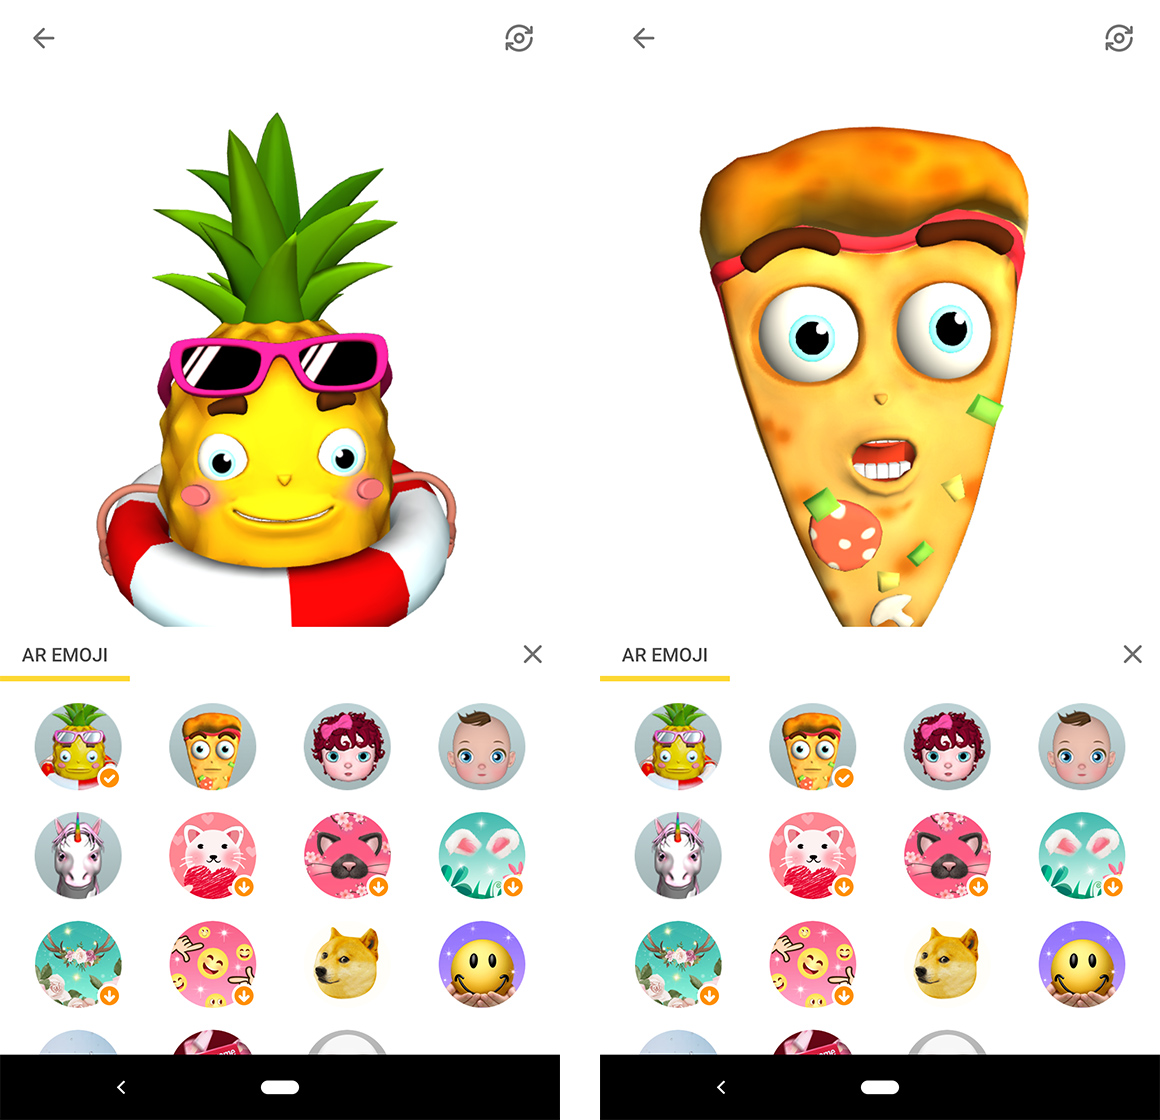 Pineapple and pizza AR emoji from Facemoji